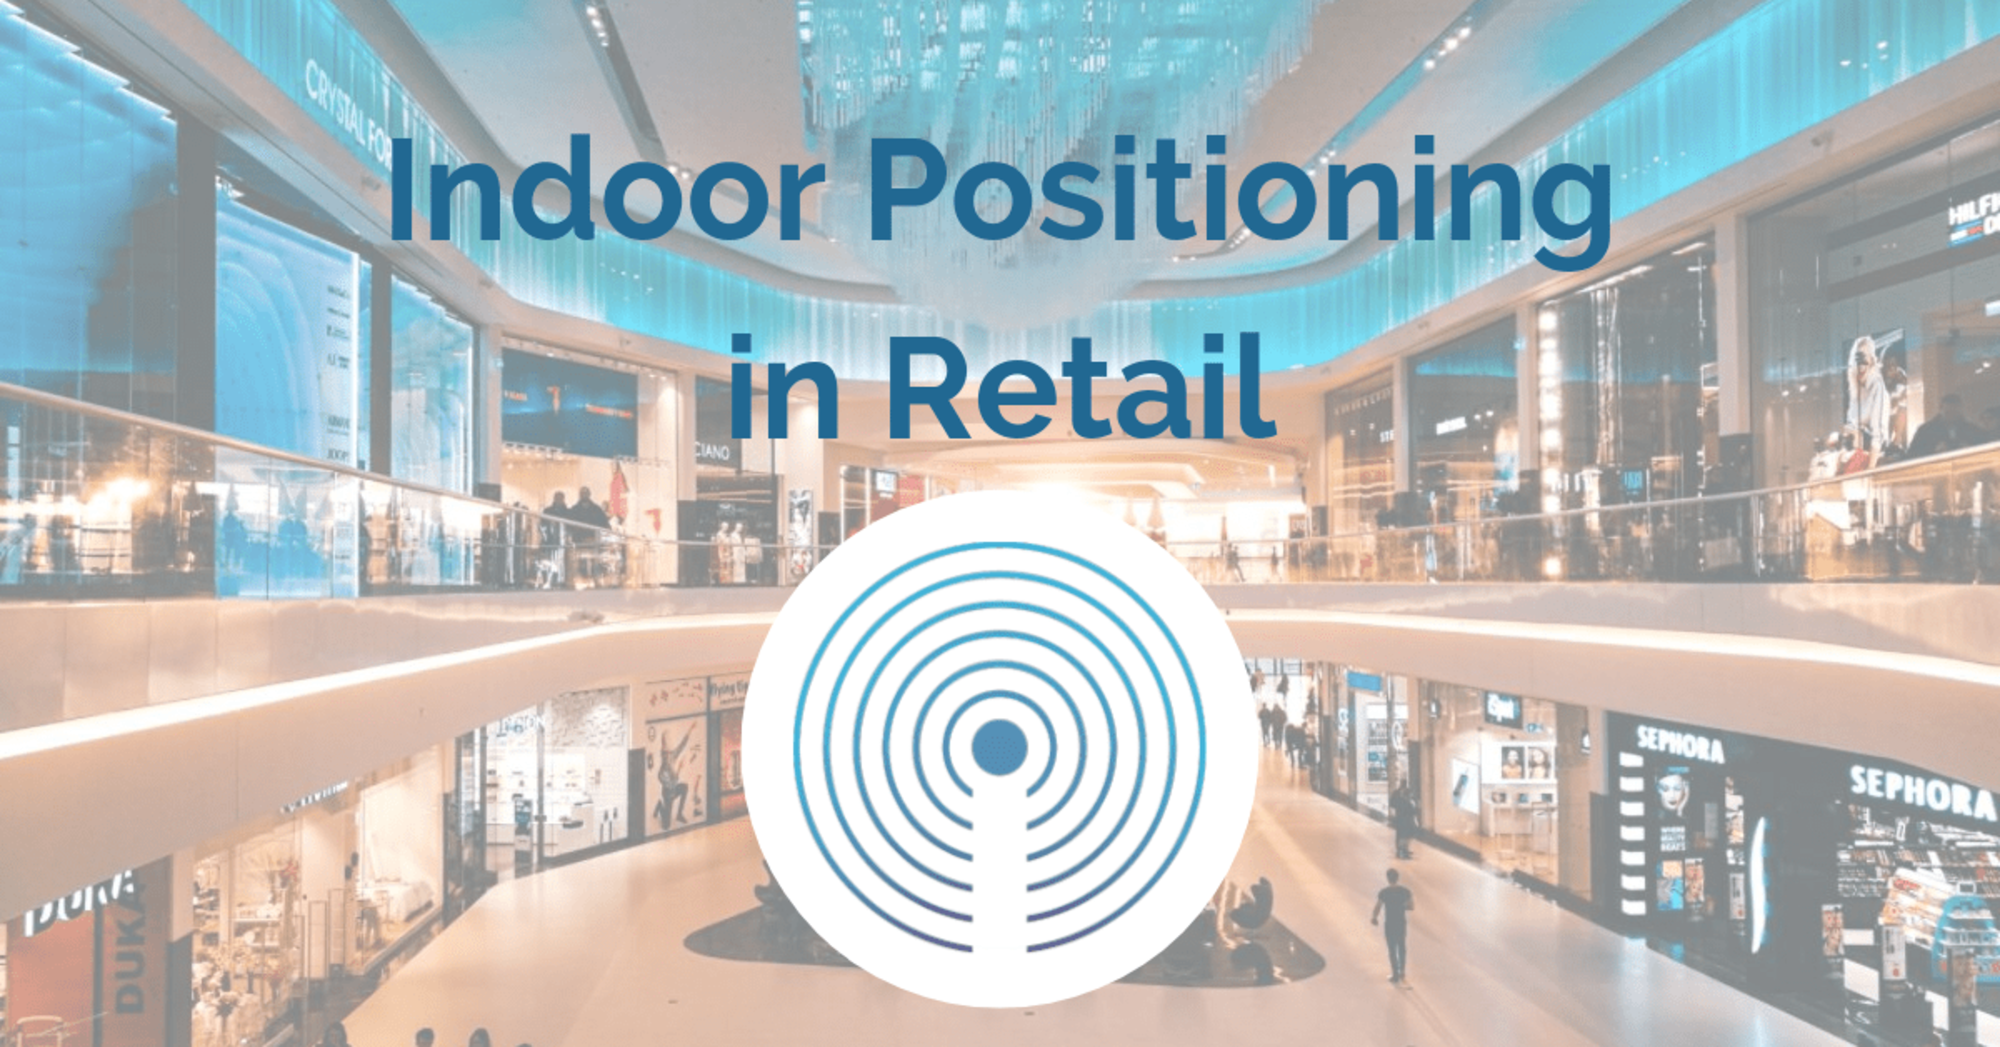 The Use of Indoor Positioning in Retail